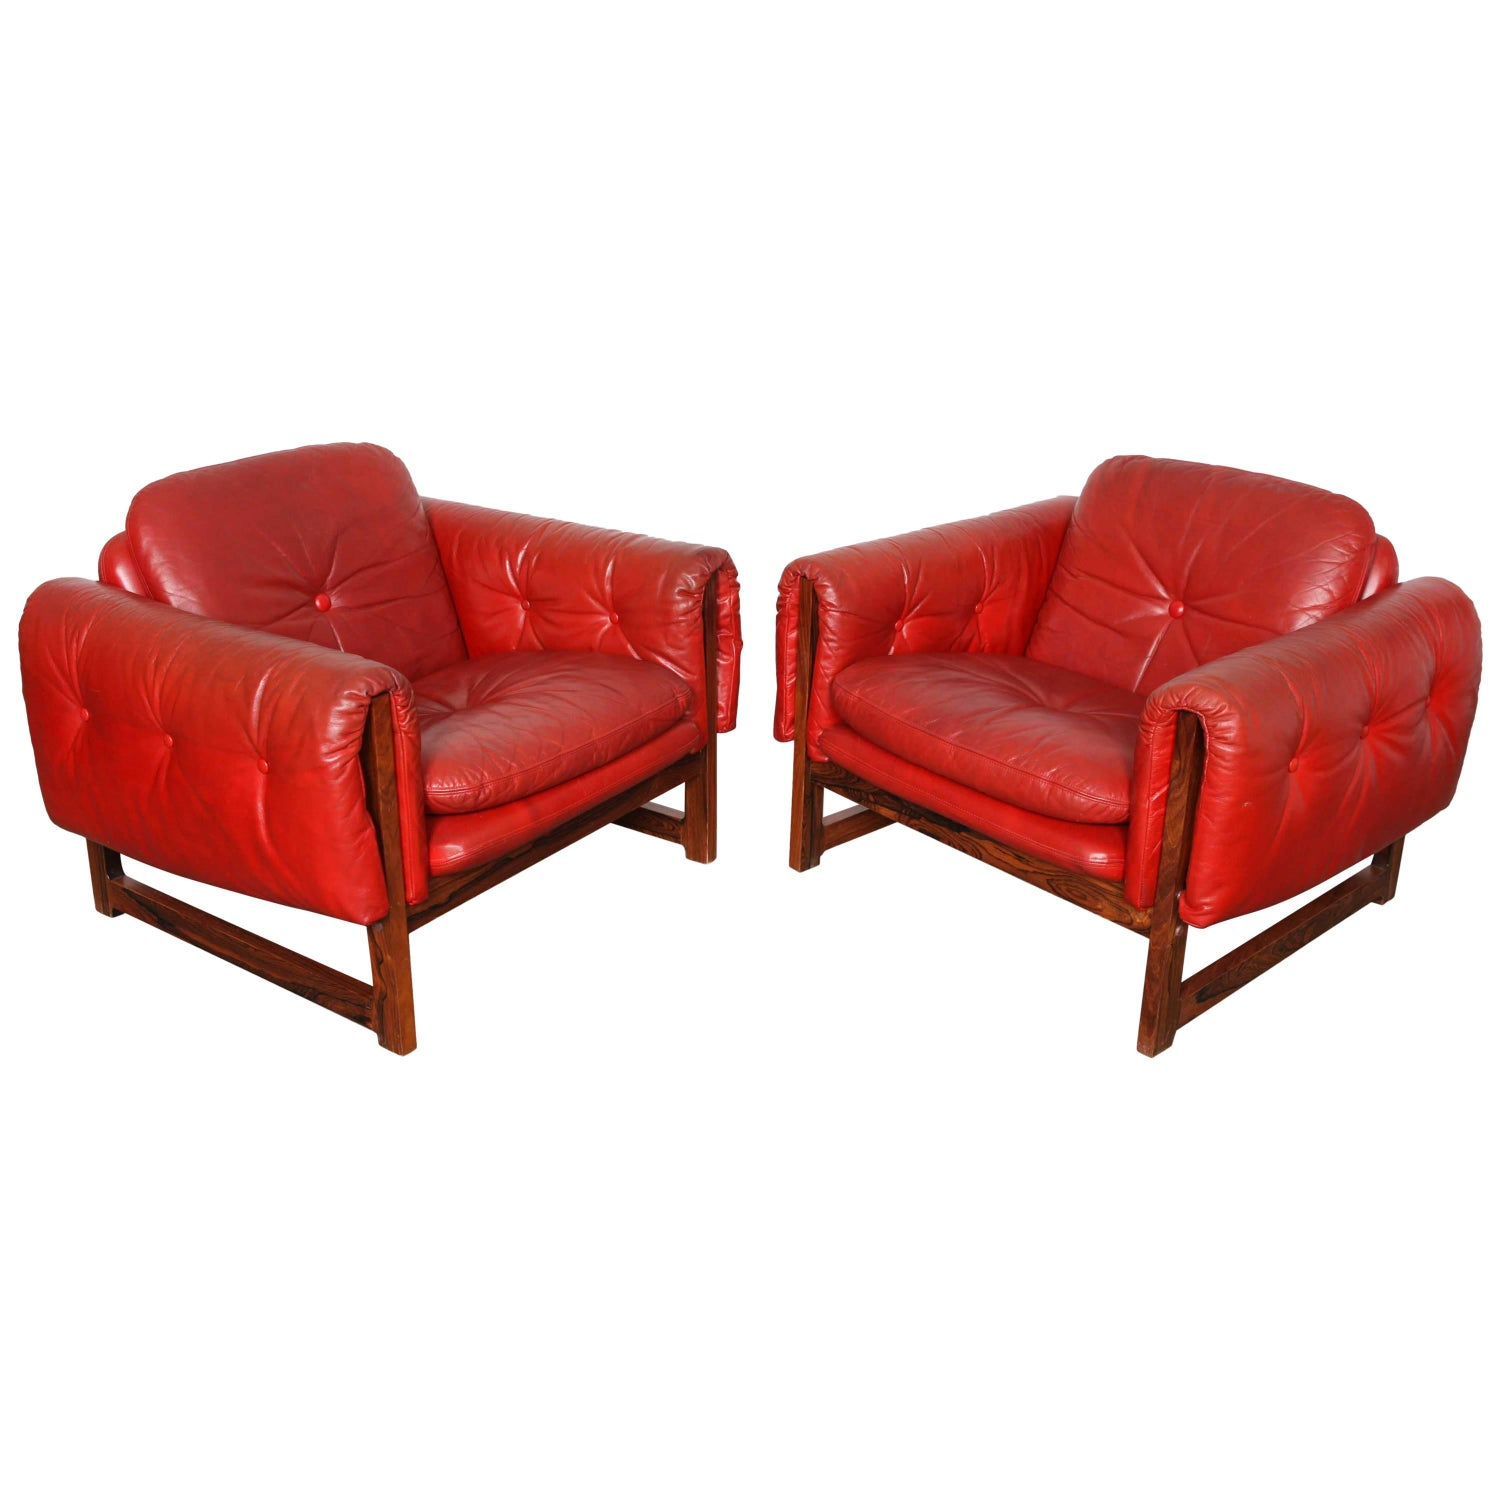 "Pair of Red Leather ""Milano"" Lounge Chairs by Risto Halme on"